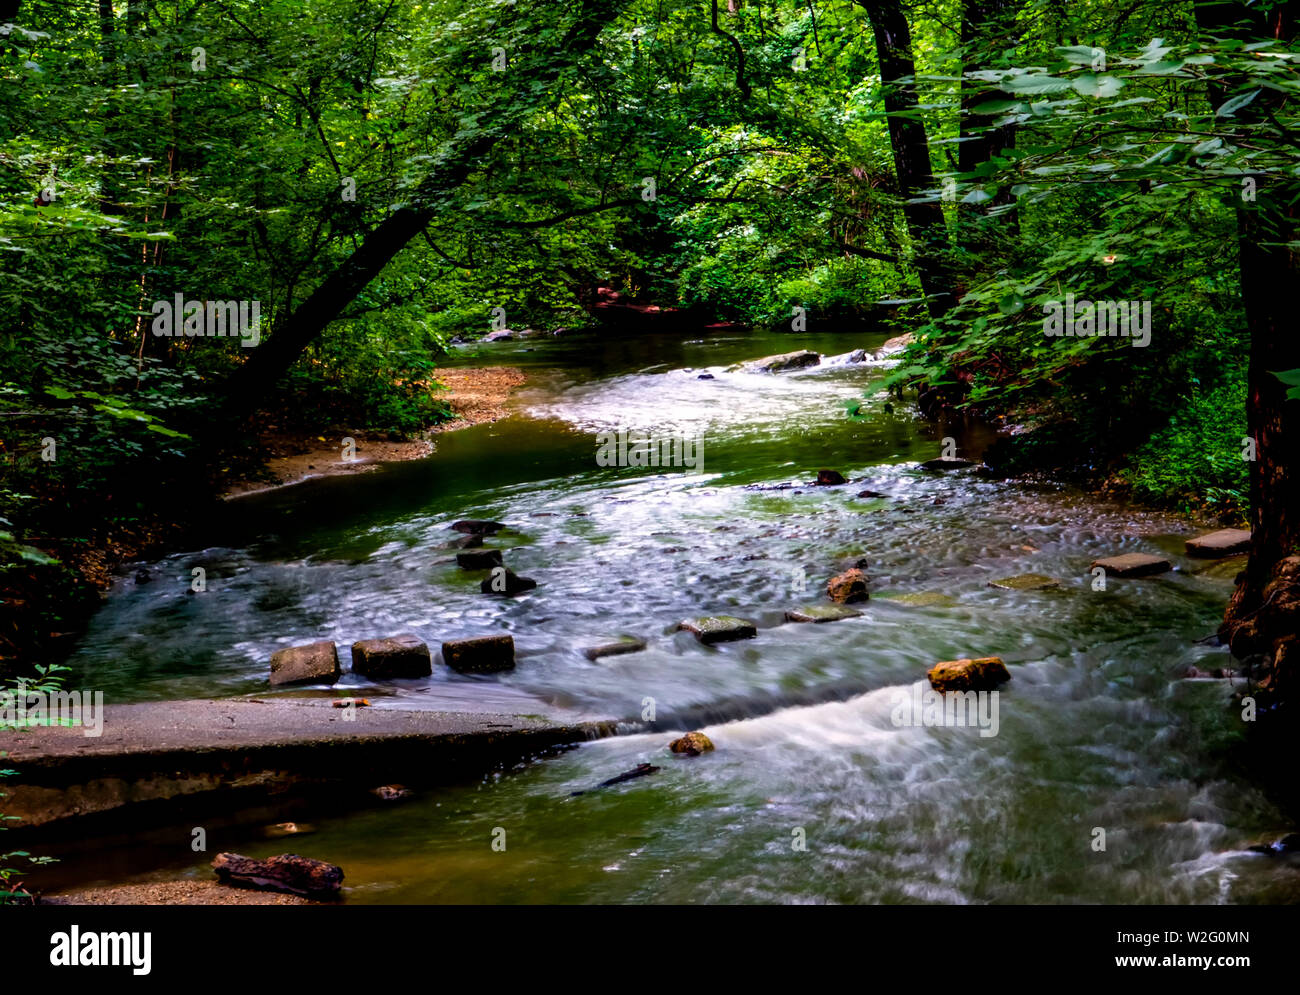 Cascading water - Stock Image